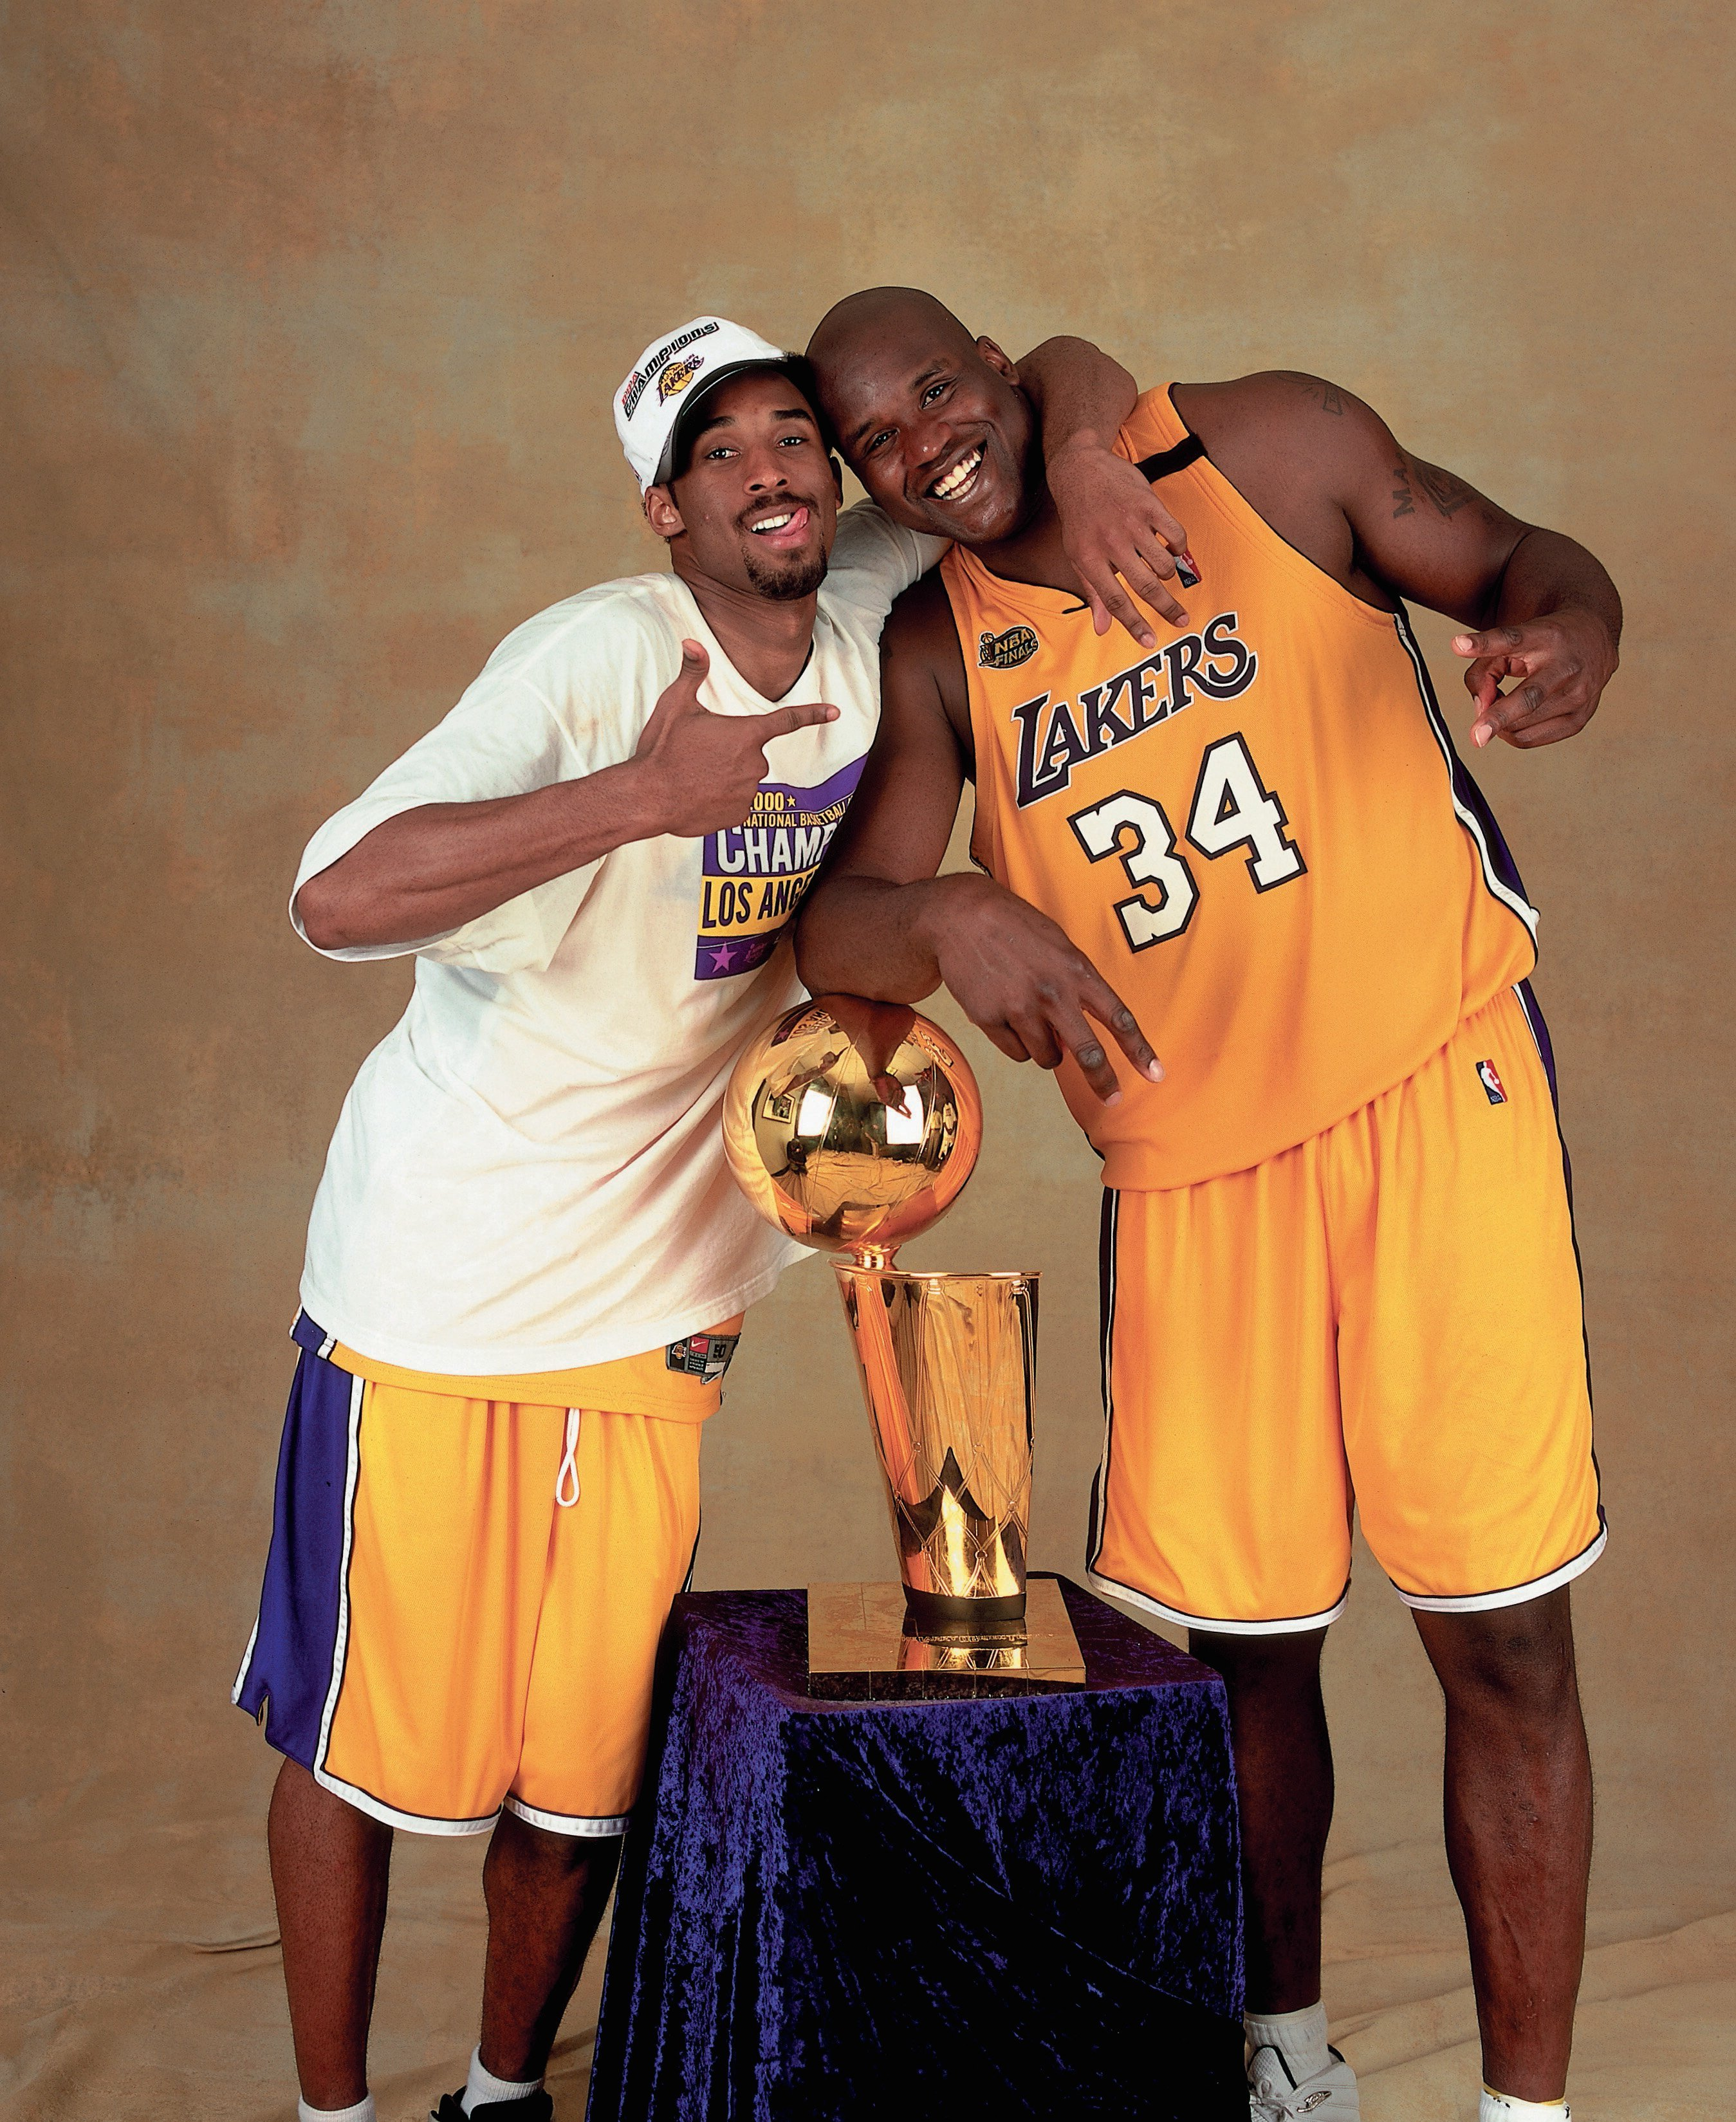 Kobe Bryant and Shaquille O'Neal fooling around for photos after winning the NBA Championship in June 2000. | Photo: Getty Images